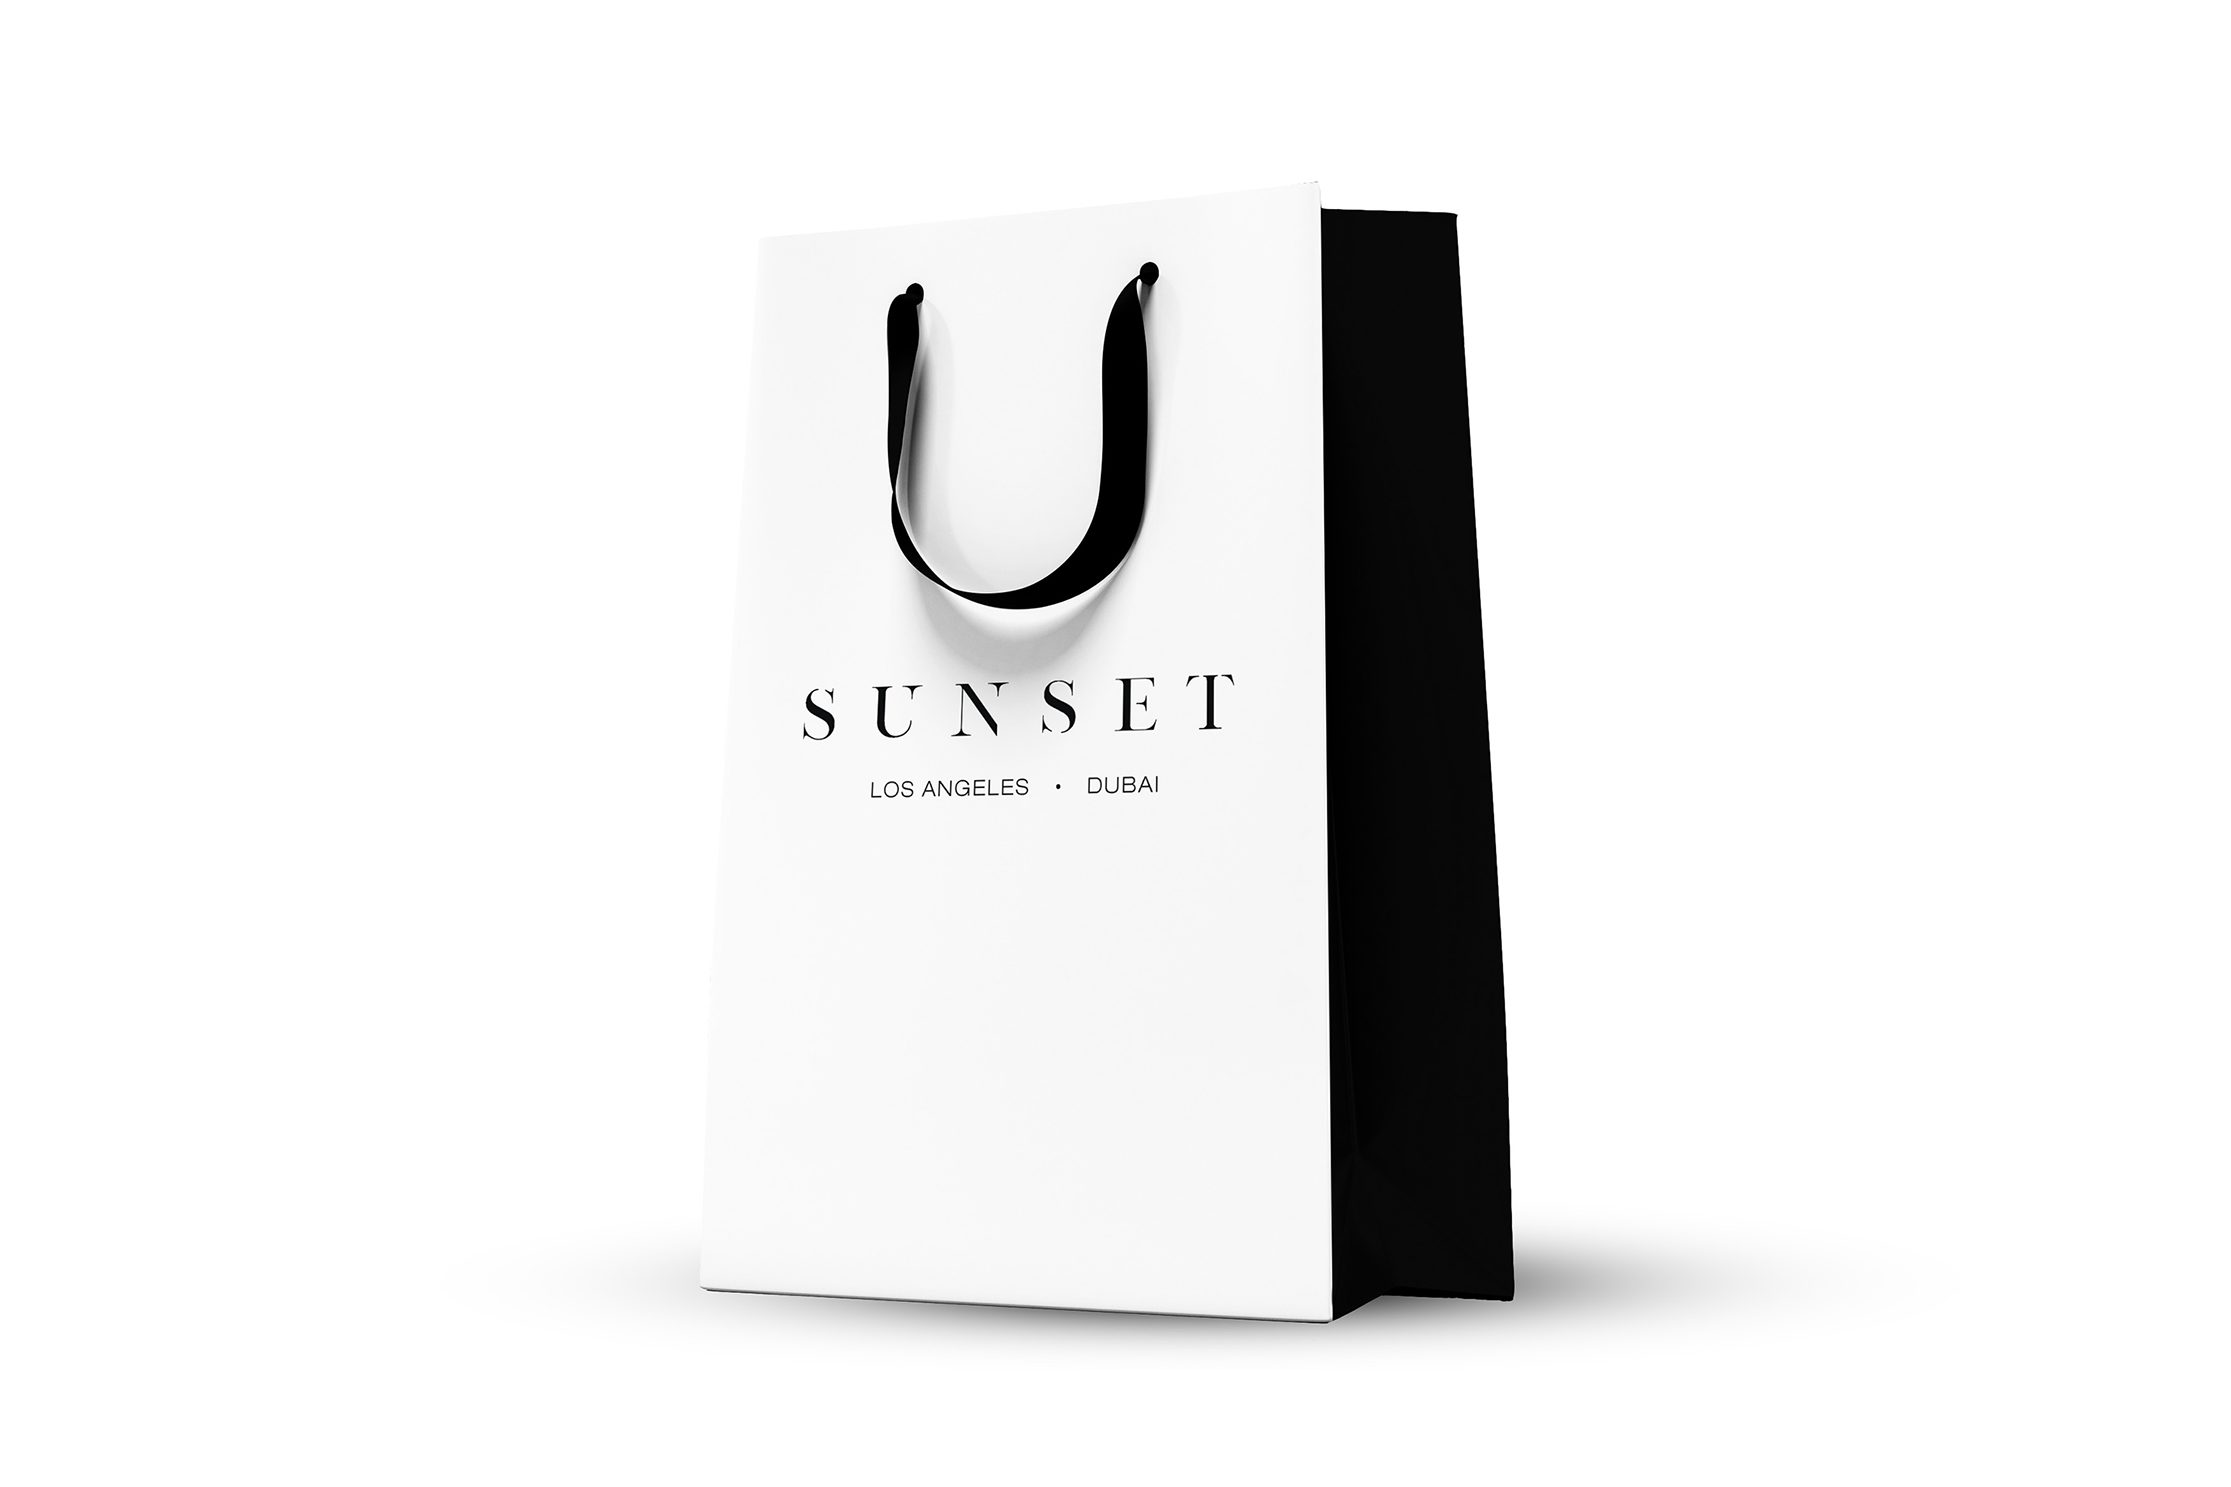 Sunset Cosmetic Surgery Branding Shopping Bag